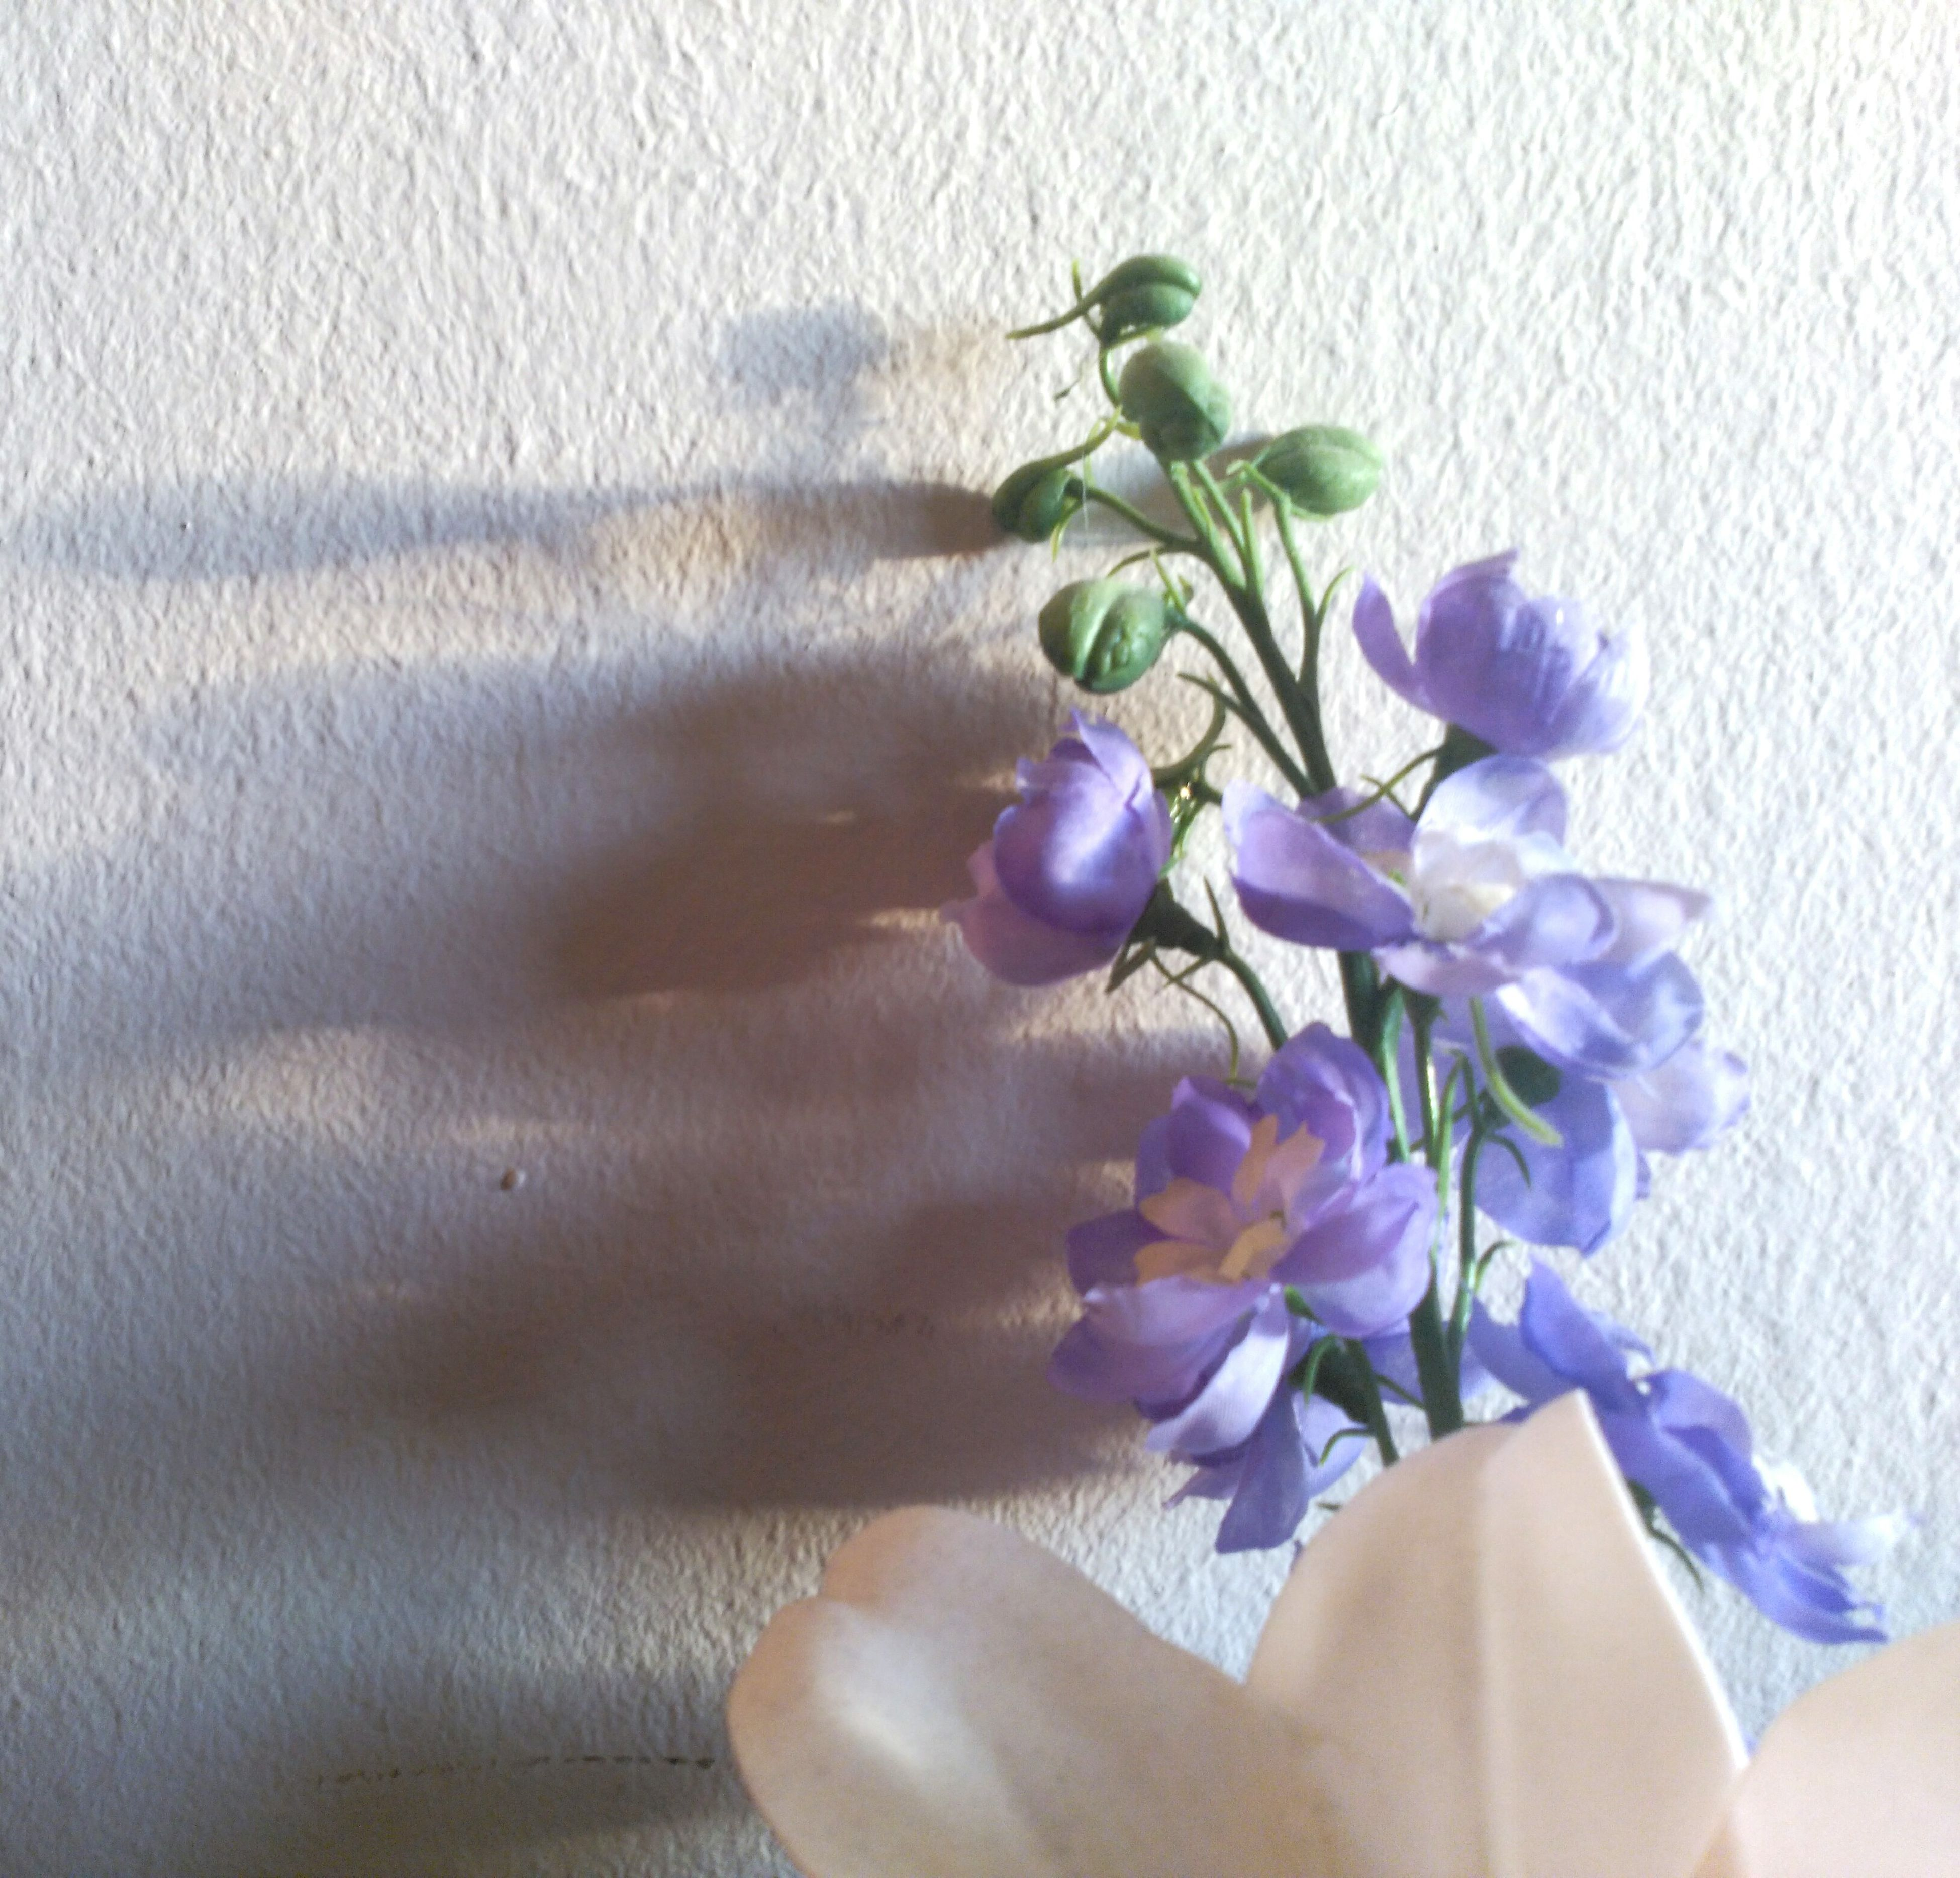 flower, nature, fragility, purple, freshness, plant, flower head, indoors, beauty in nature, day, close-up, no people